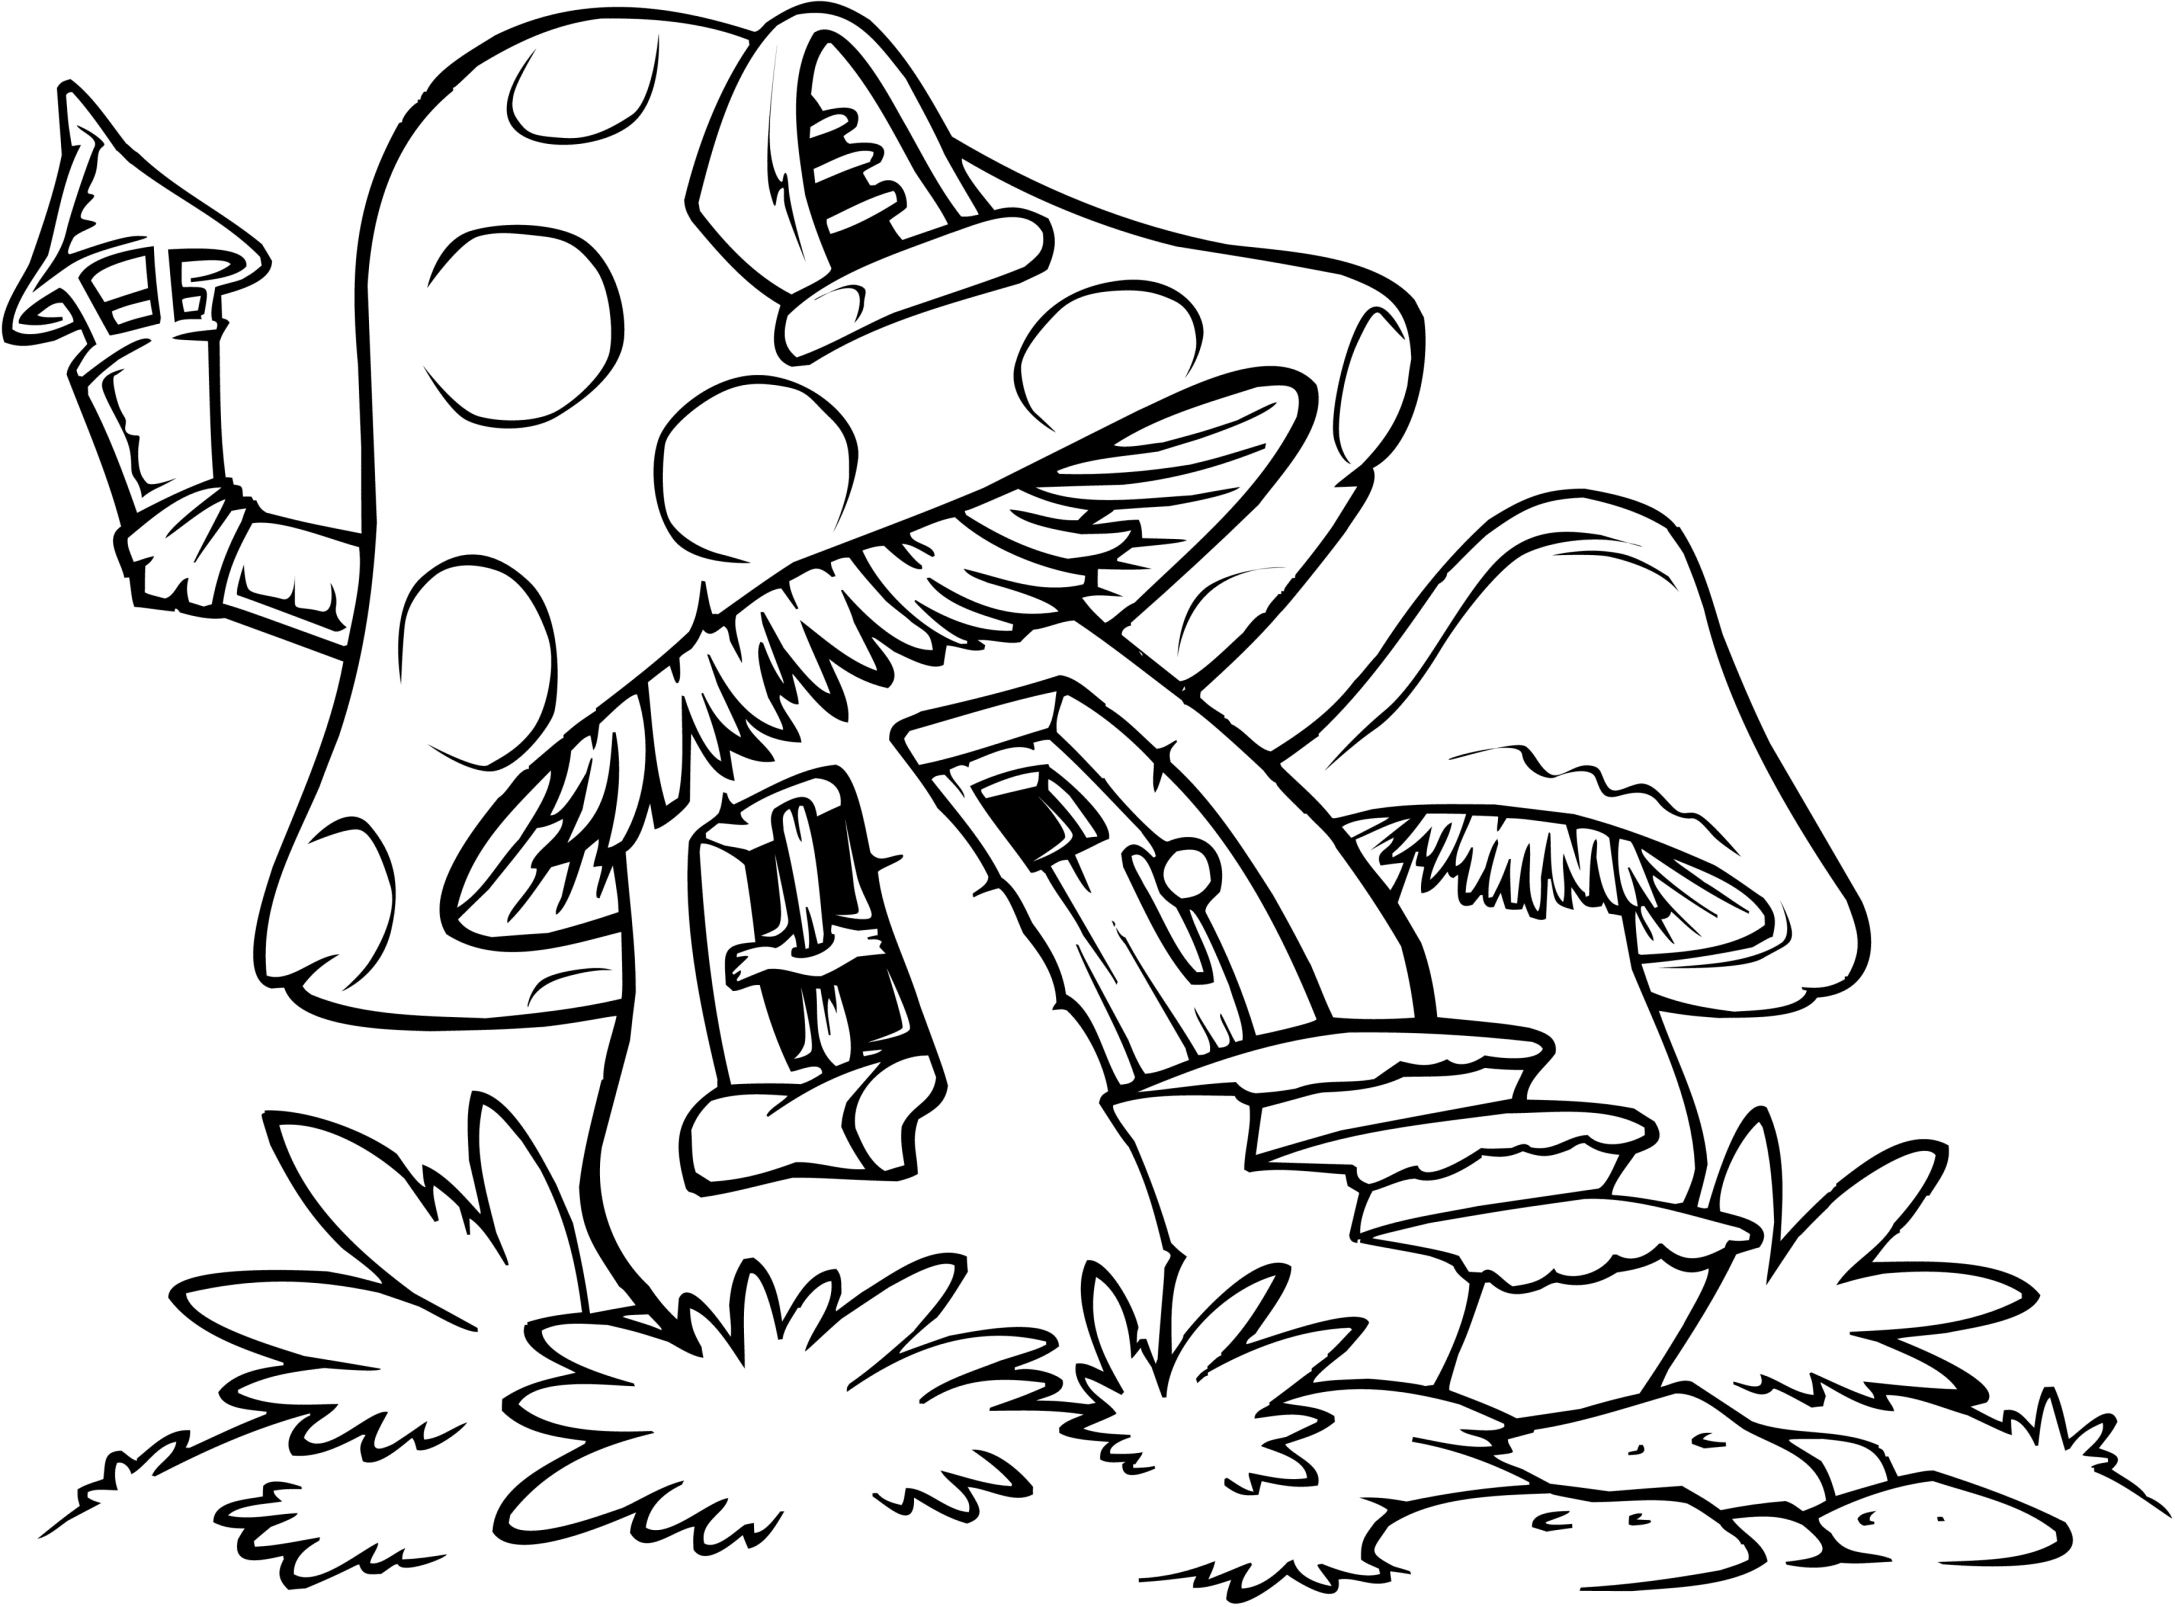 Easy Coloring Pages   Zendoodles For Cards   Pinterest   House - Free Printable Mushroom Coloring Pages